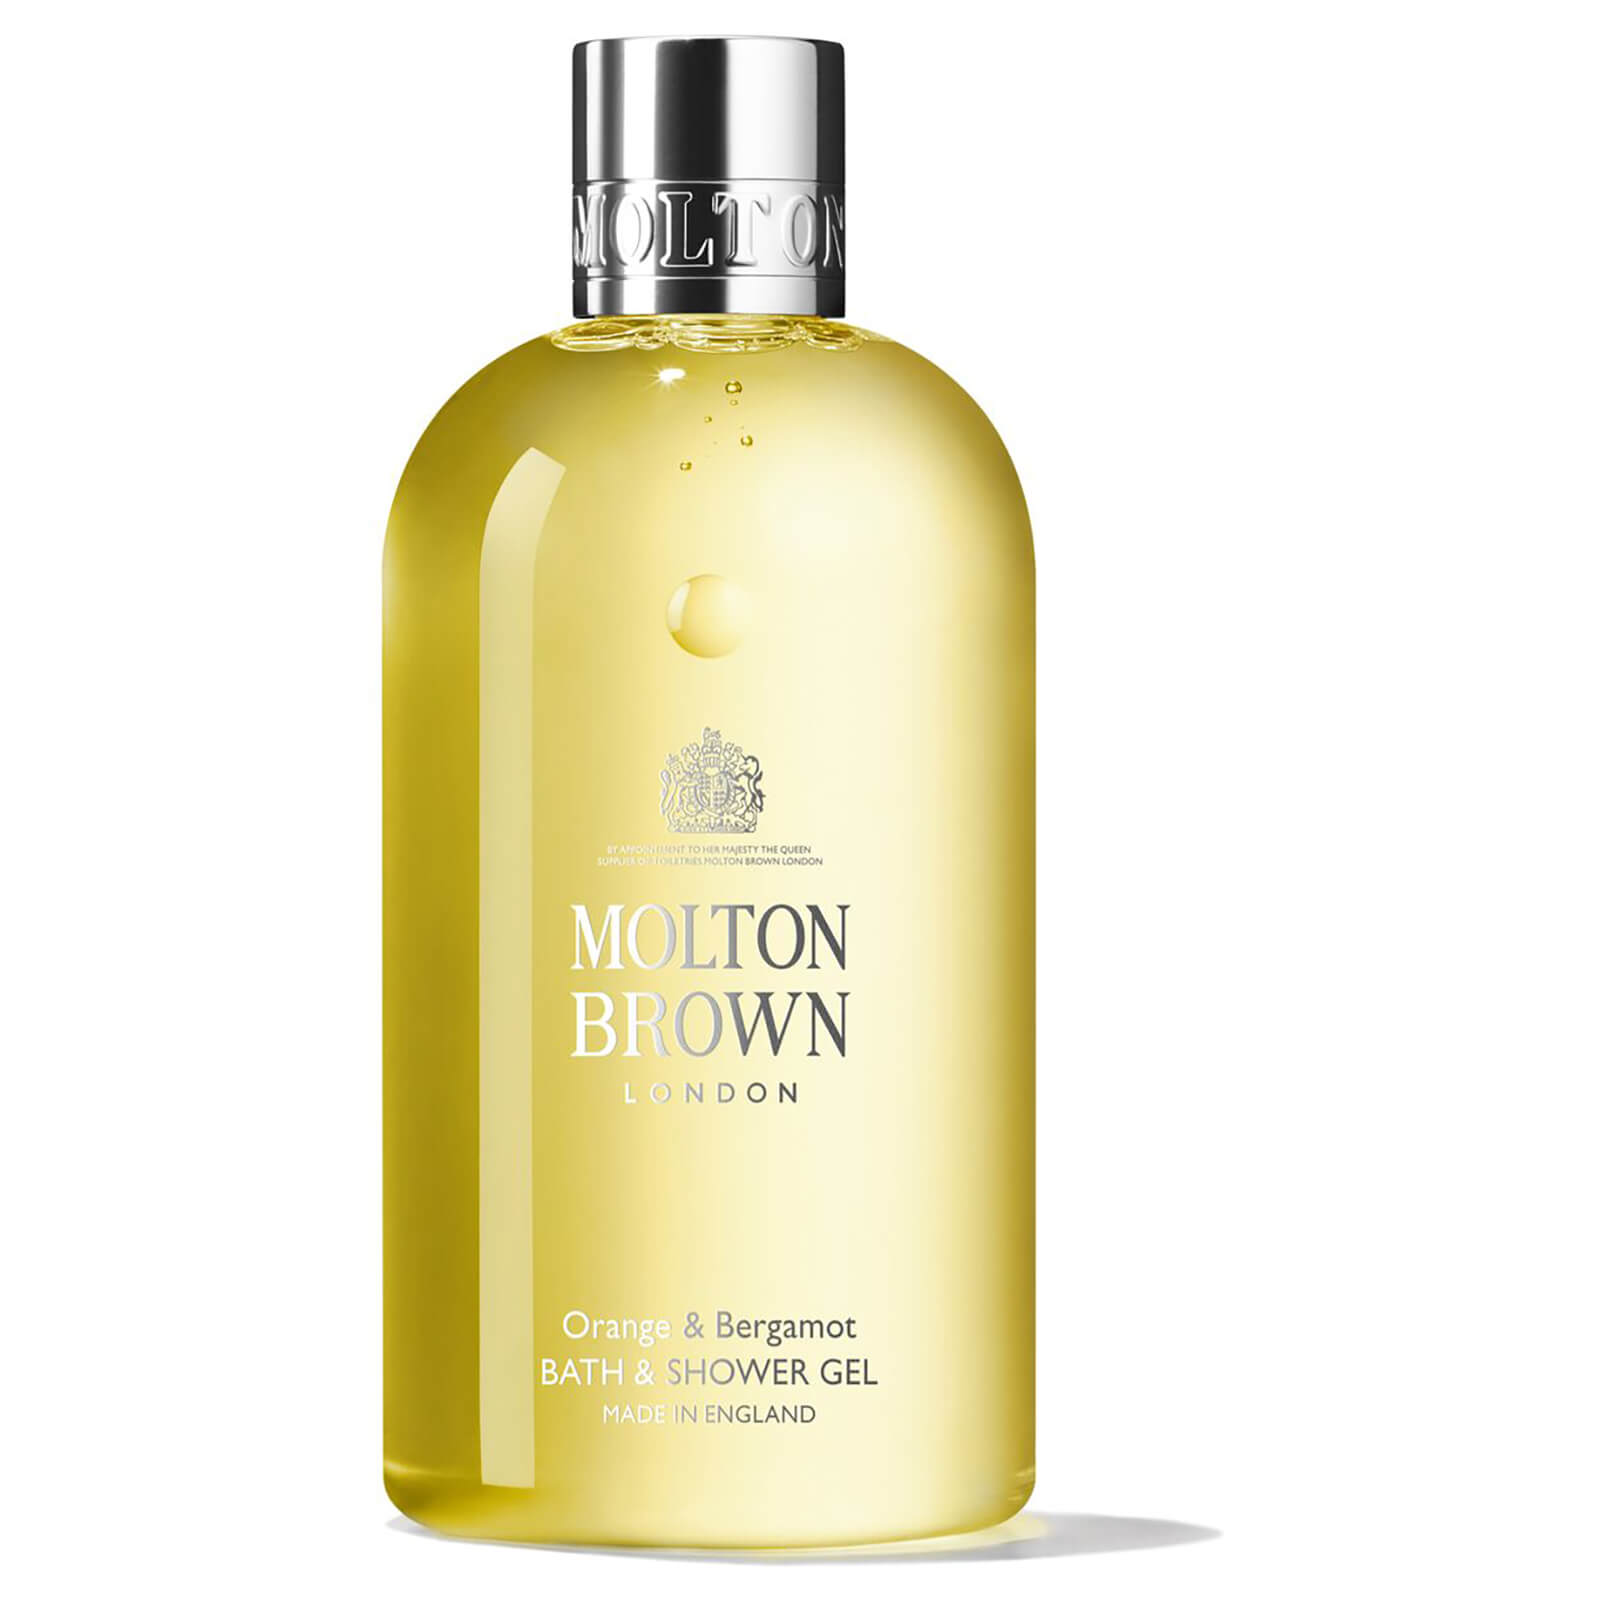 Molton Brown 摩顿布朗 柑橘佛手柑沐浴露 300ml